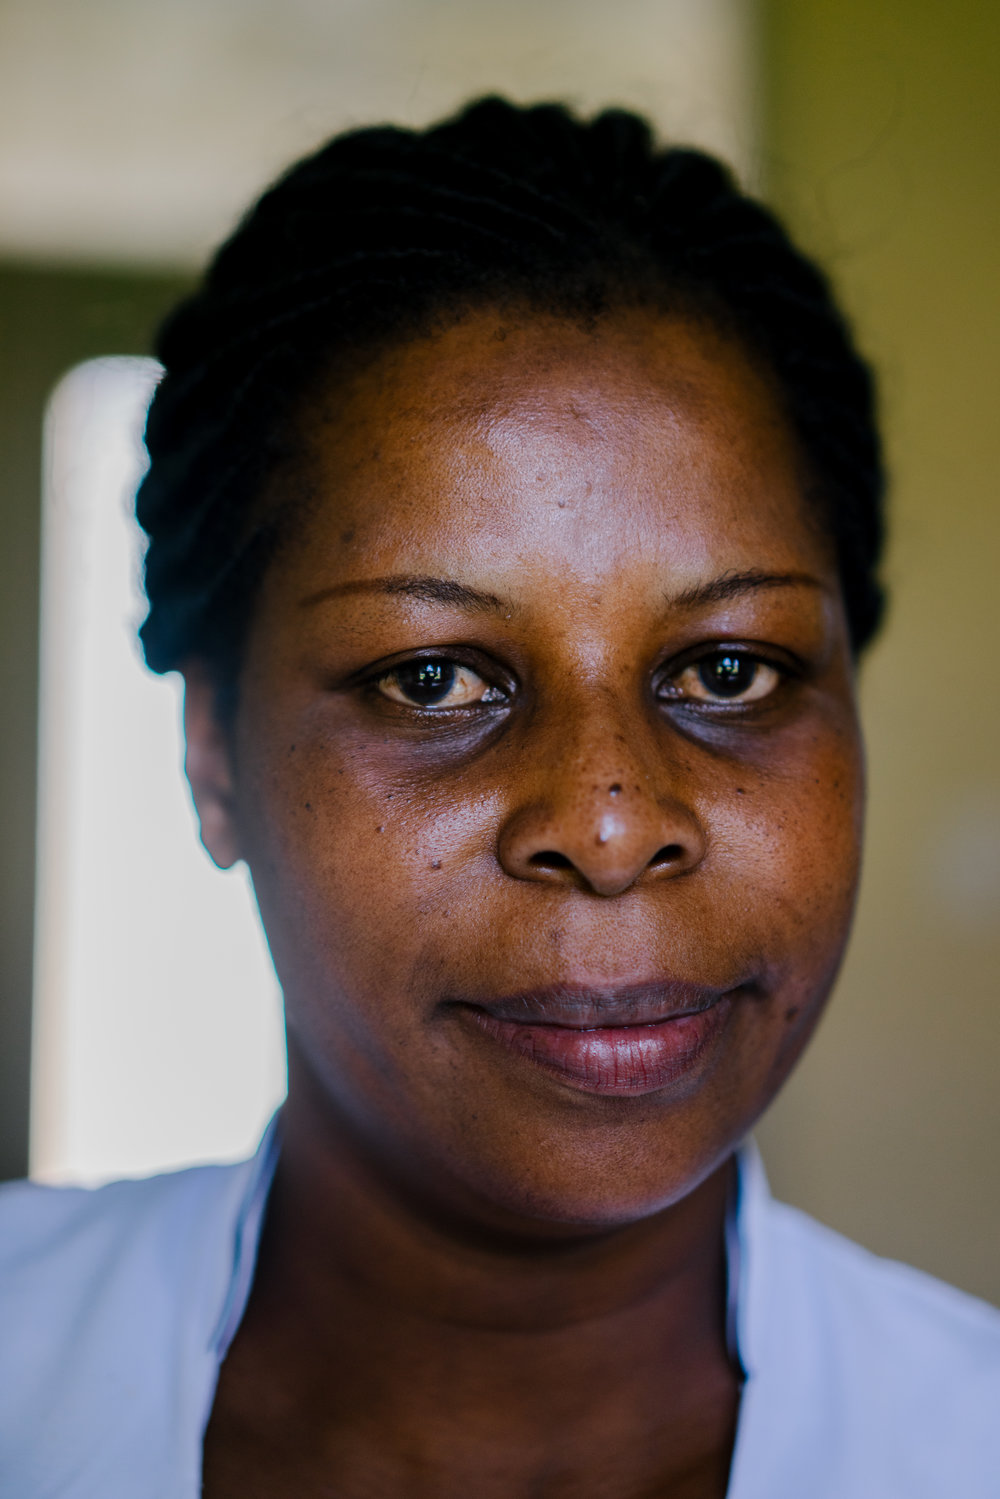 Susan Wanyama, a nursing officer at the Bokoli Hospital in western Kenya poses for a portrait. She offers clandestine abortions to women in need.